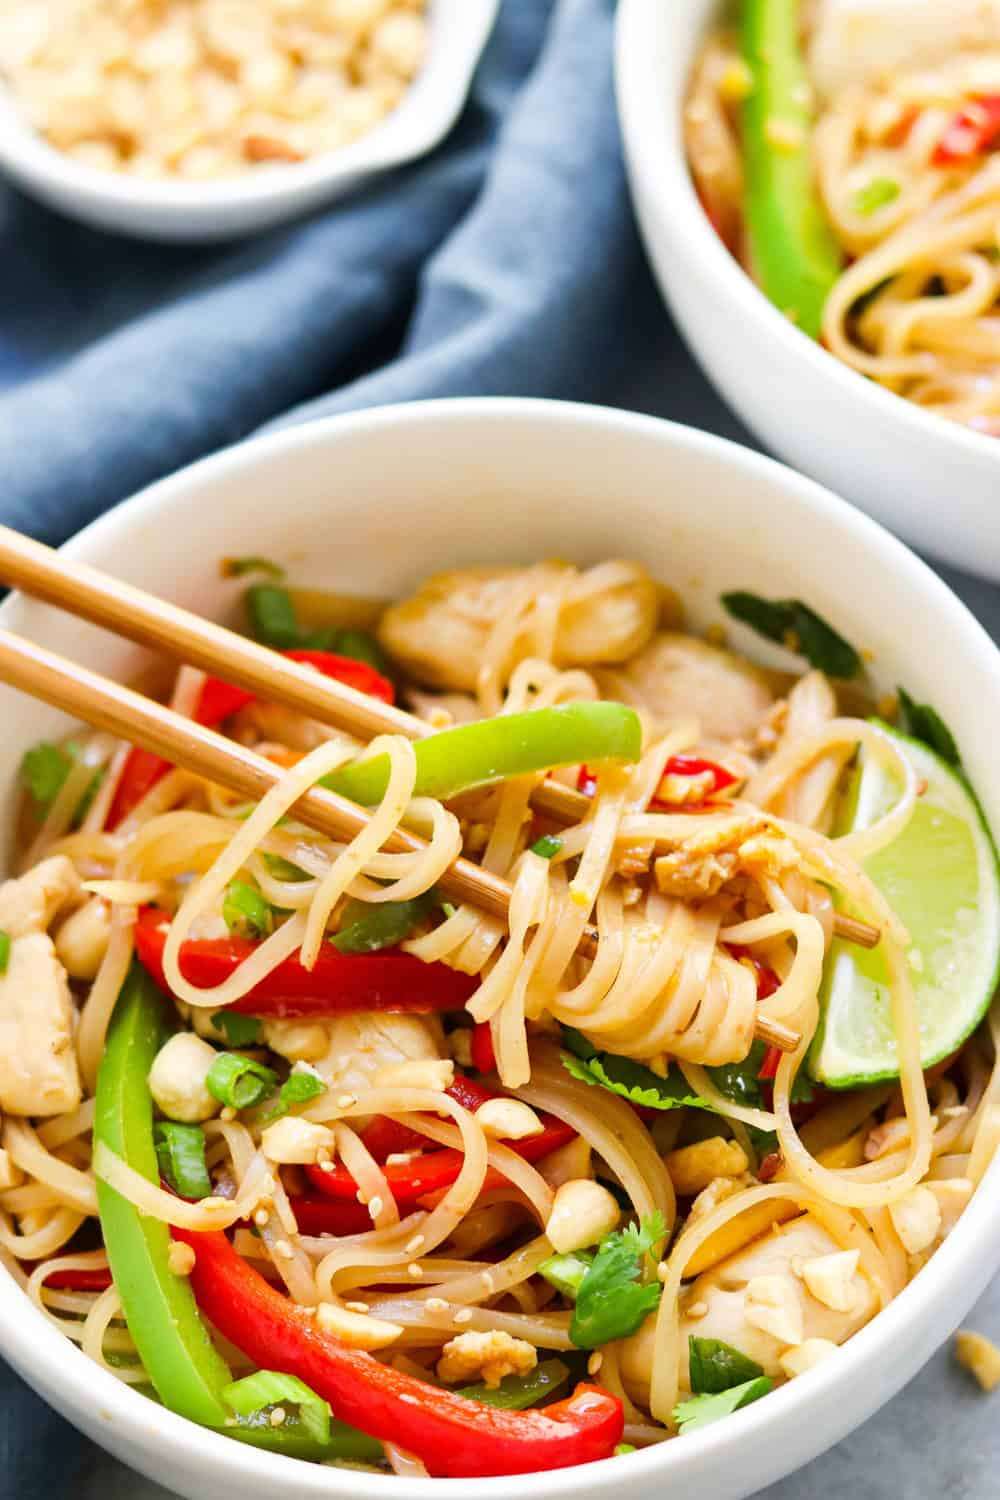 noodles with chicken and veggies covered in pad thai sauce with chopsticks in it.